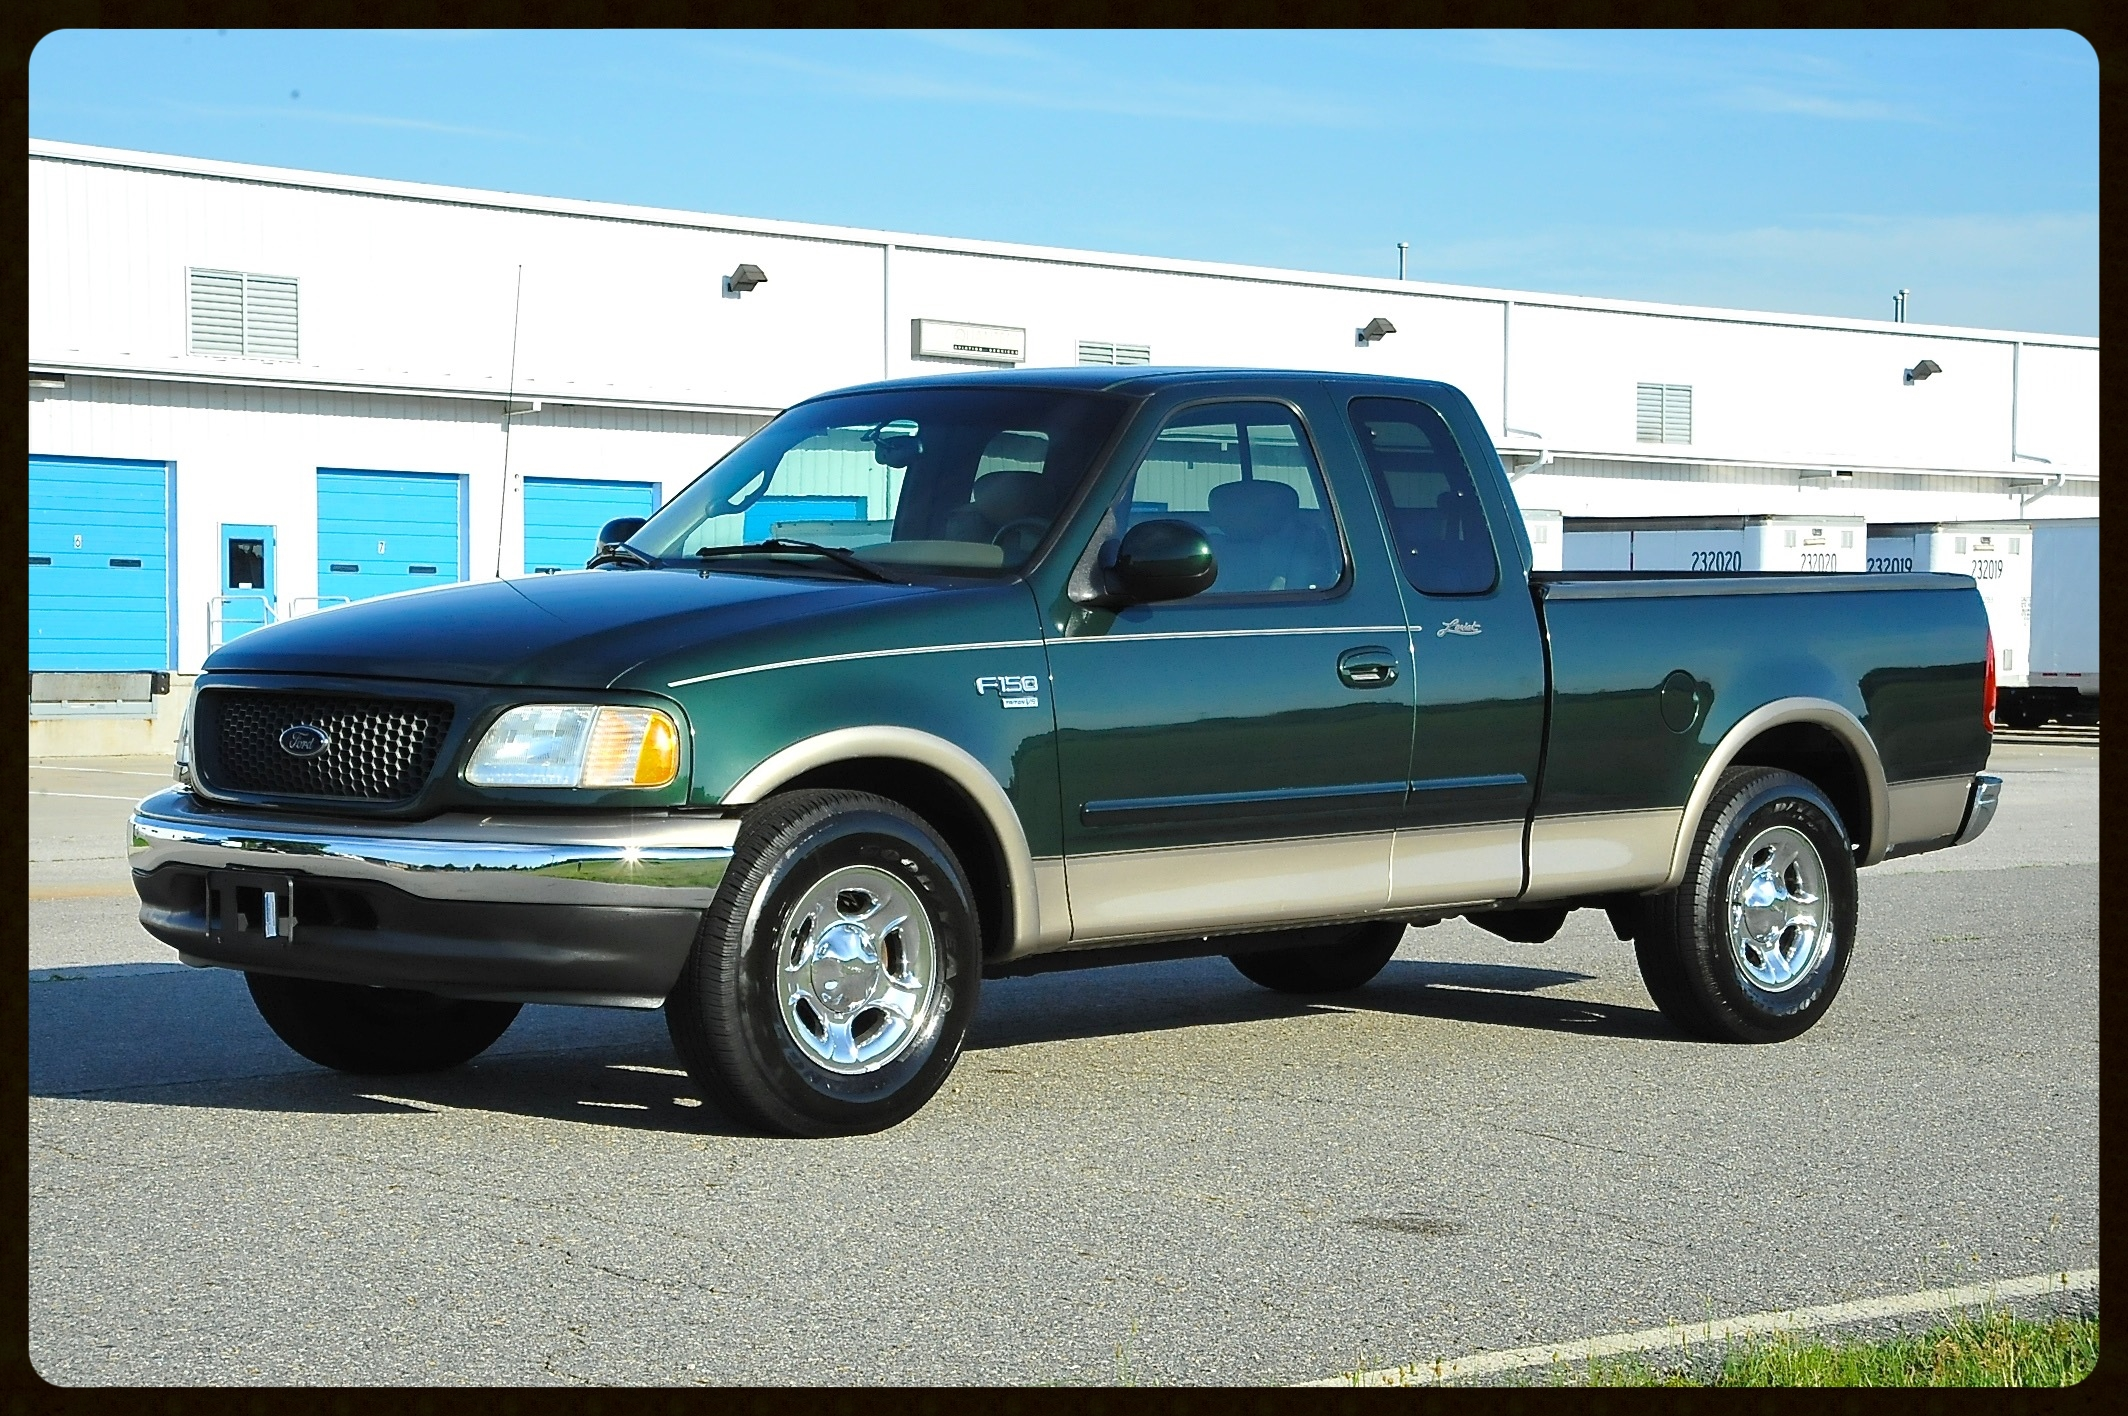 2002 Ford F150 Lariat...Gorgeous Color Combo...Tan Leather....4x4...1 Owner...102K Original Miles But Shows Like a Near New Truck. FL Truck